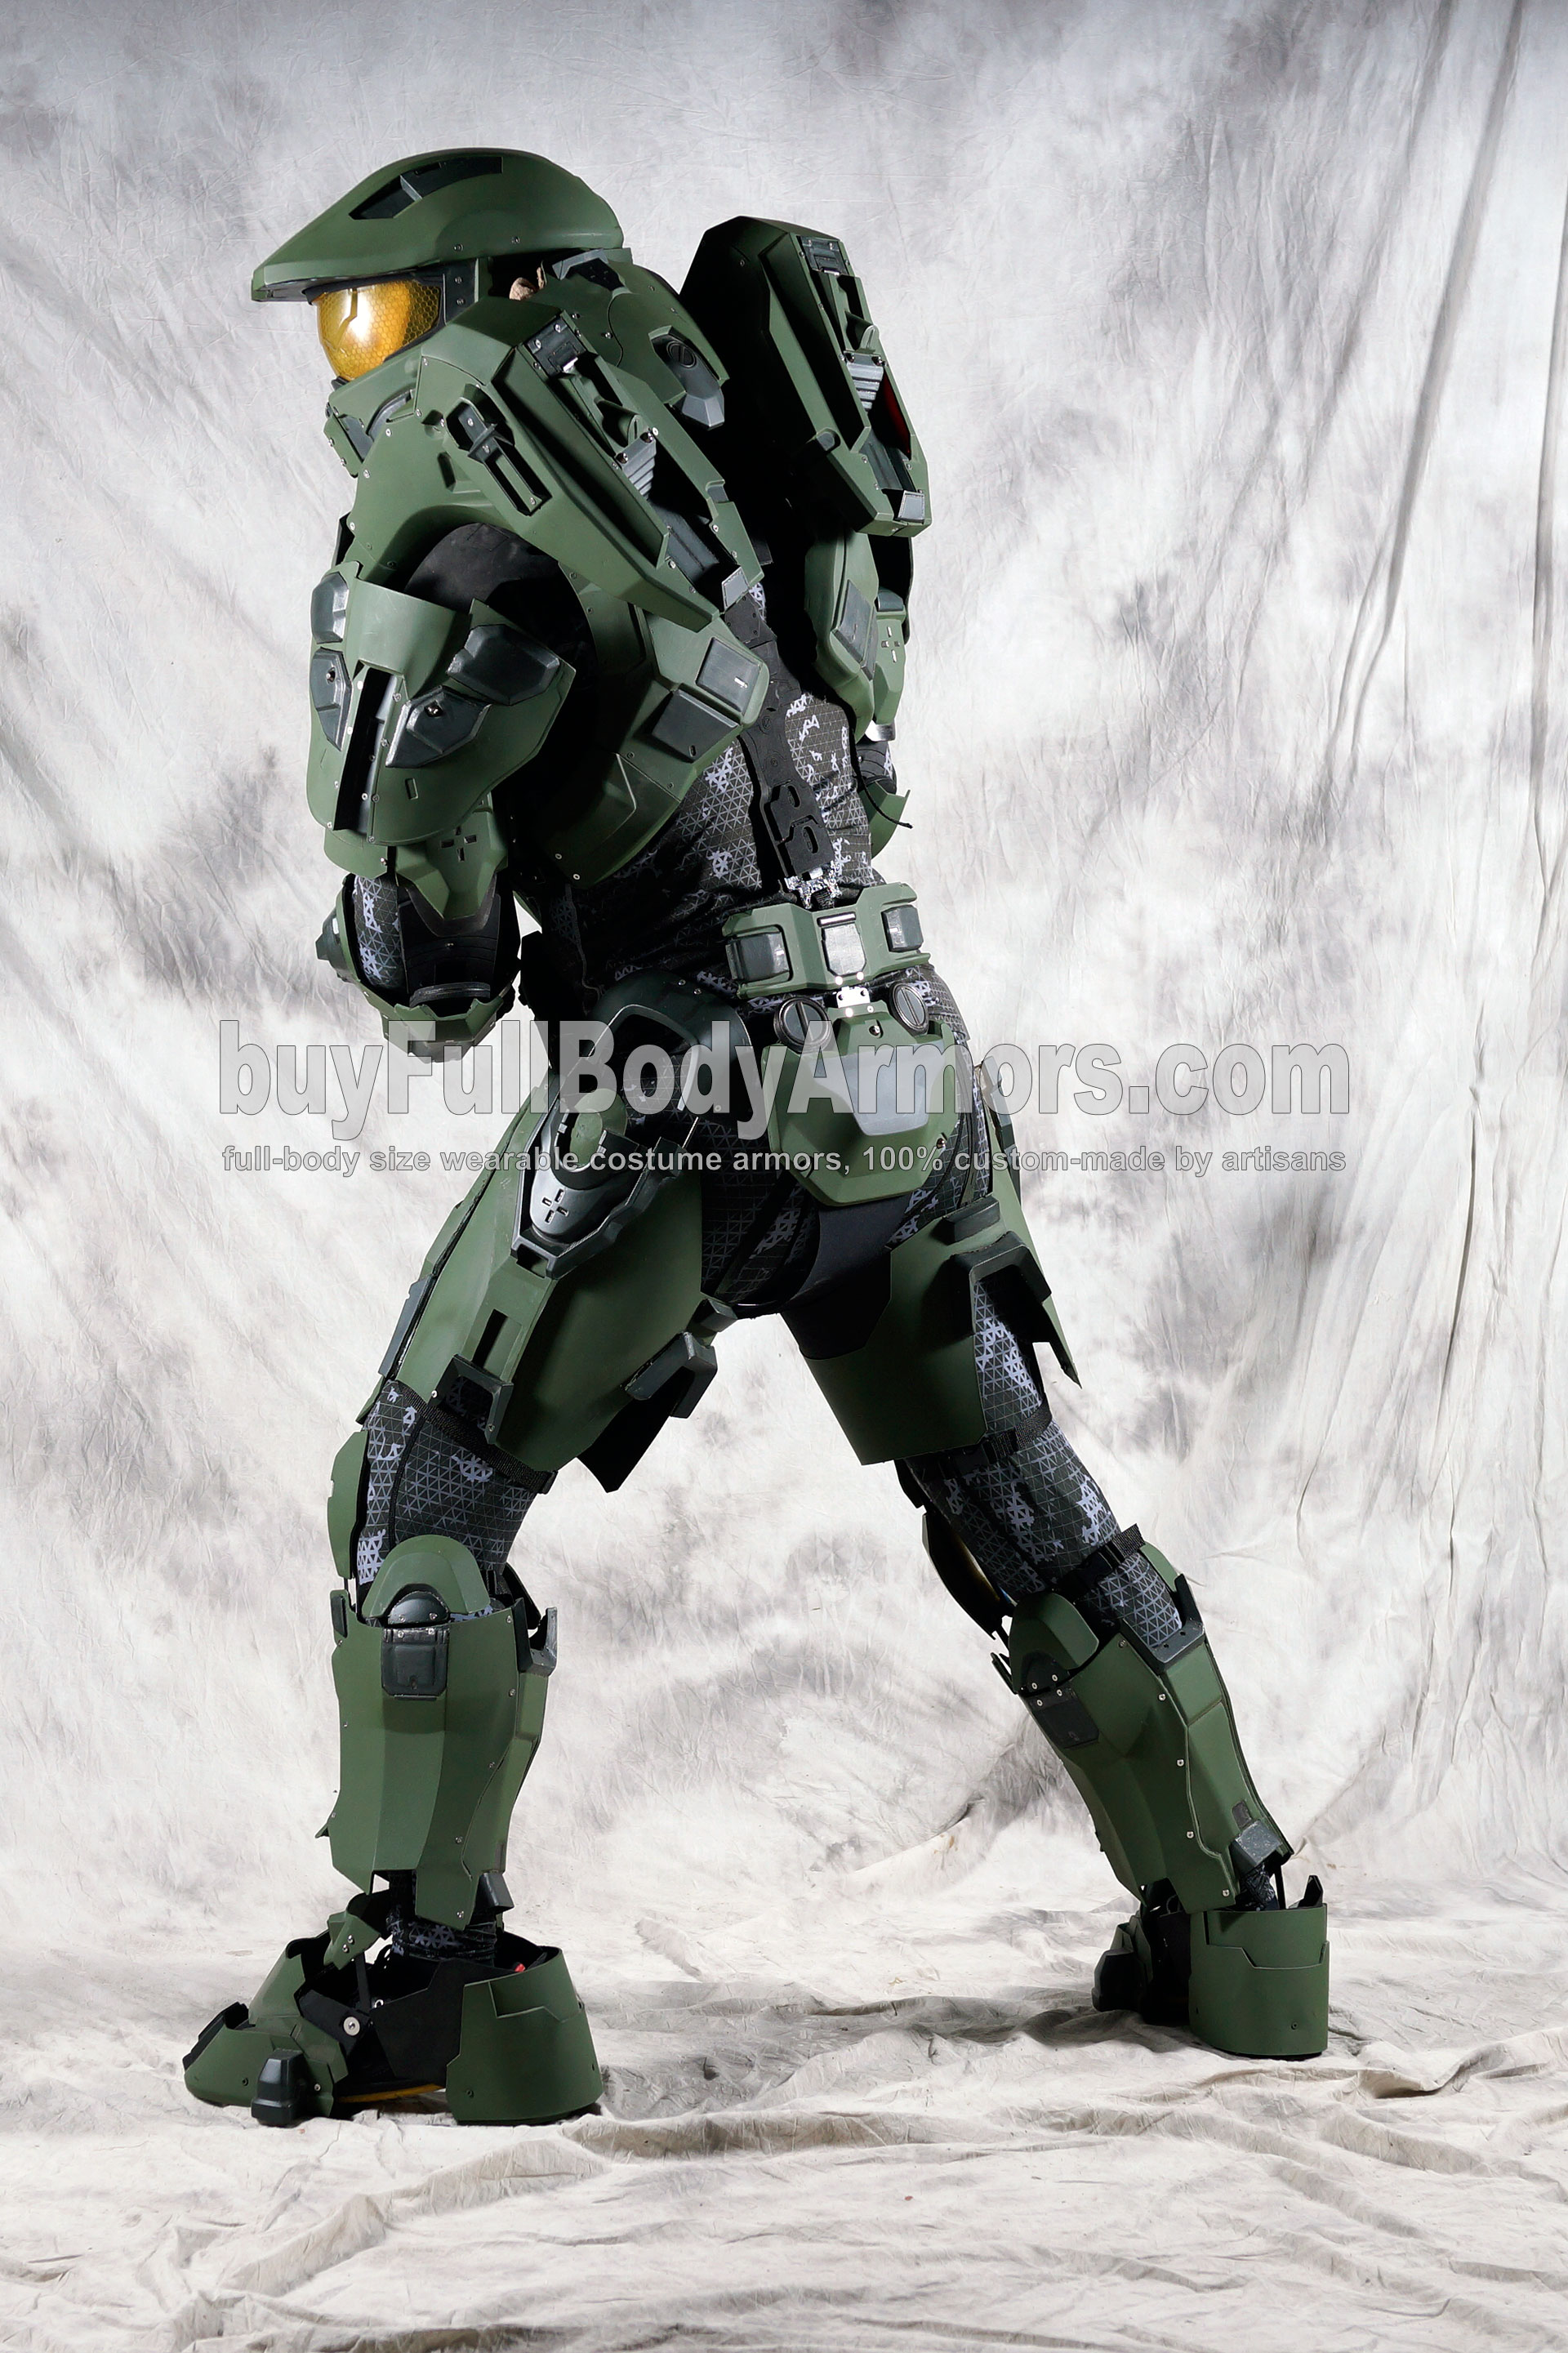 Halo 5 Master Chief Armor Suit Costume 4